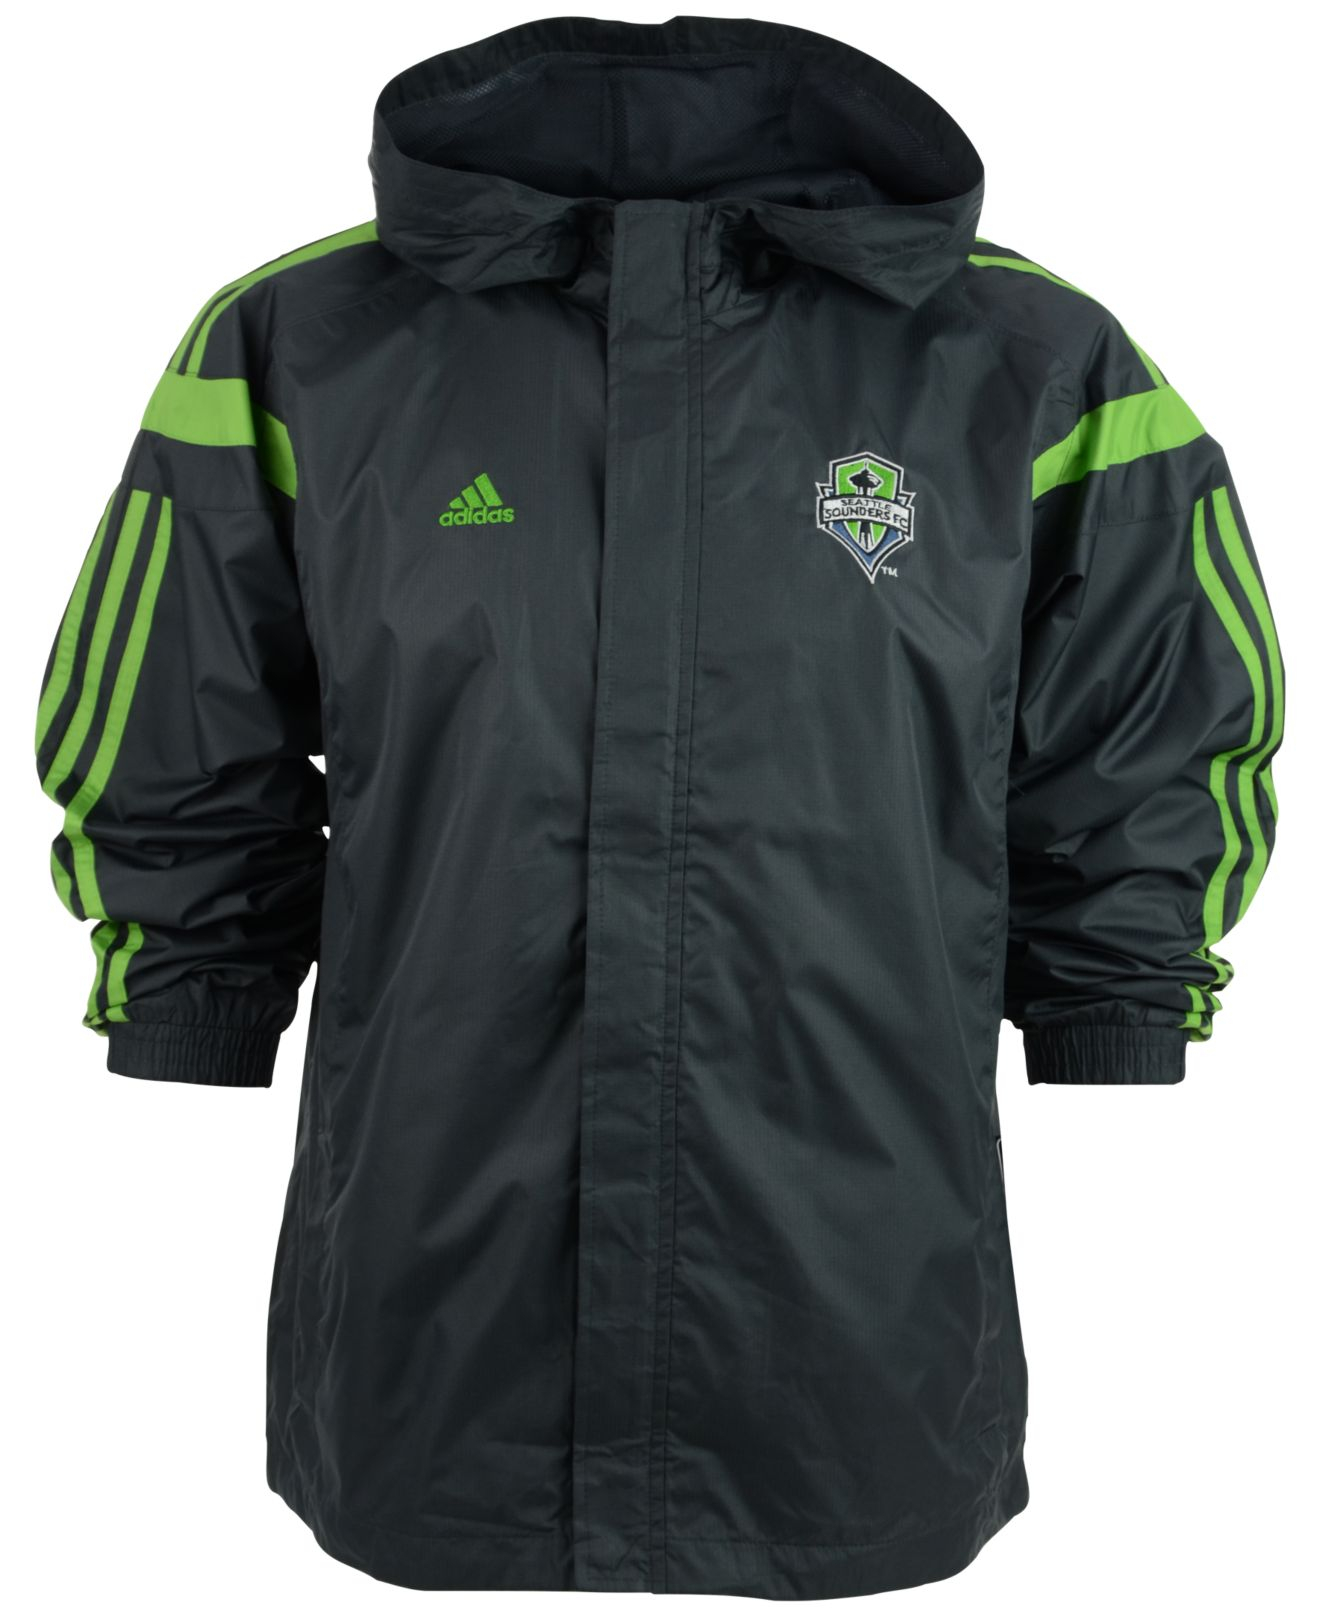 meet aa0f9 f8ee1 Adidas Green Kids Seattle Sounders Fc Rain Jacket for men